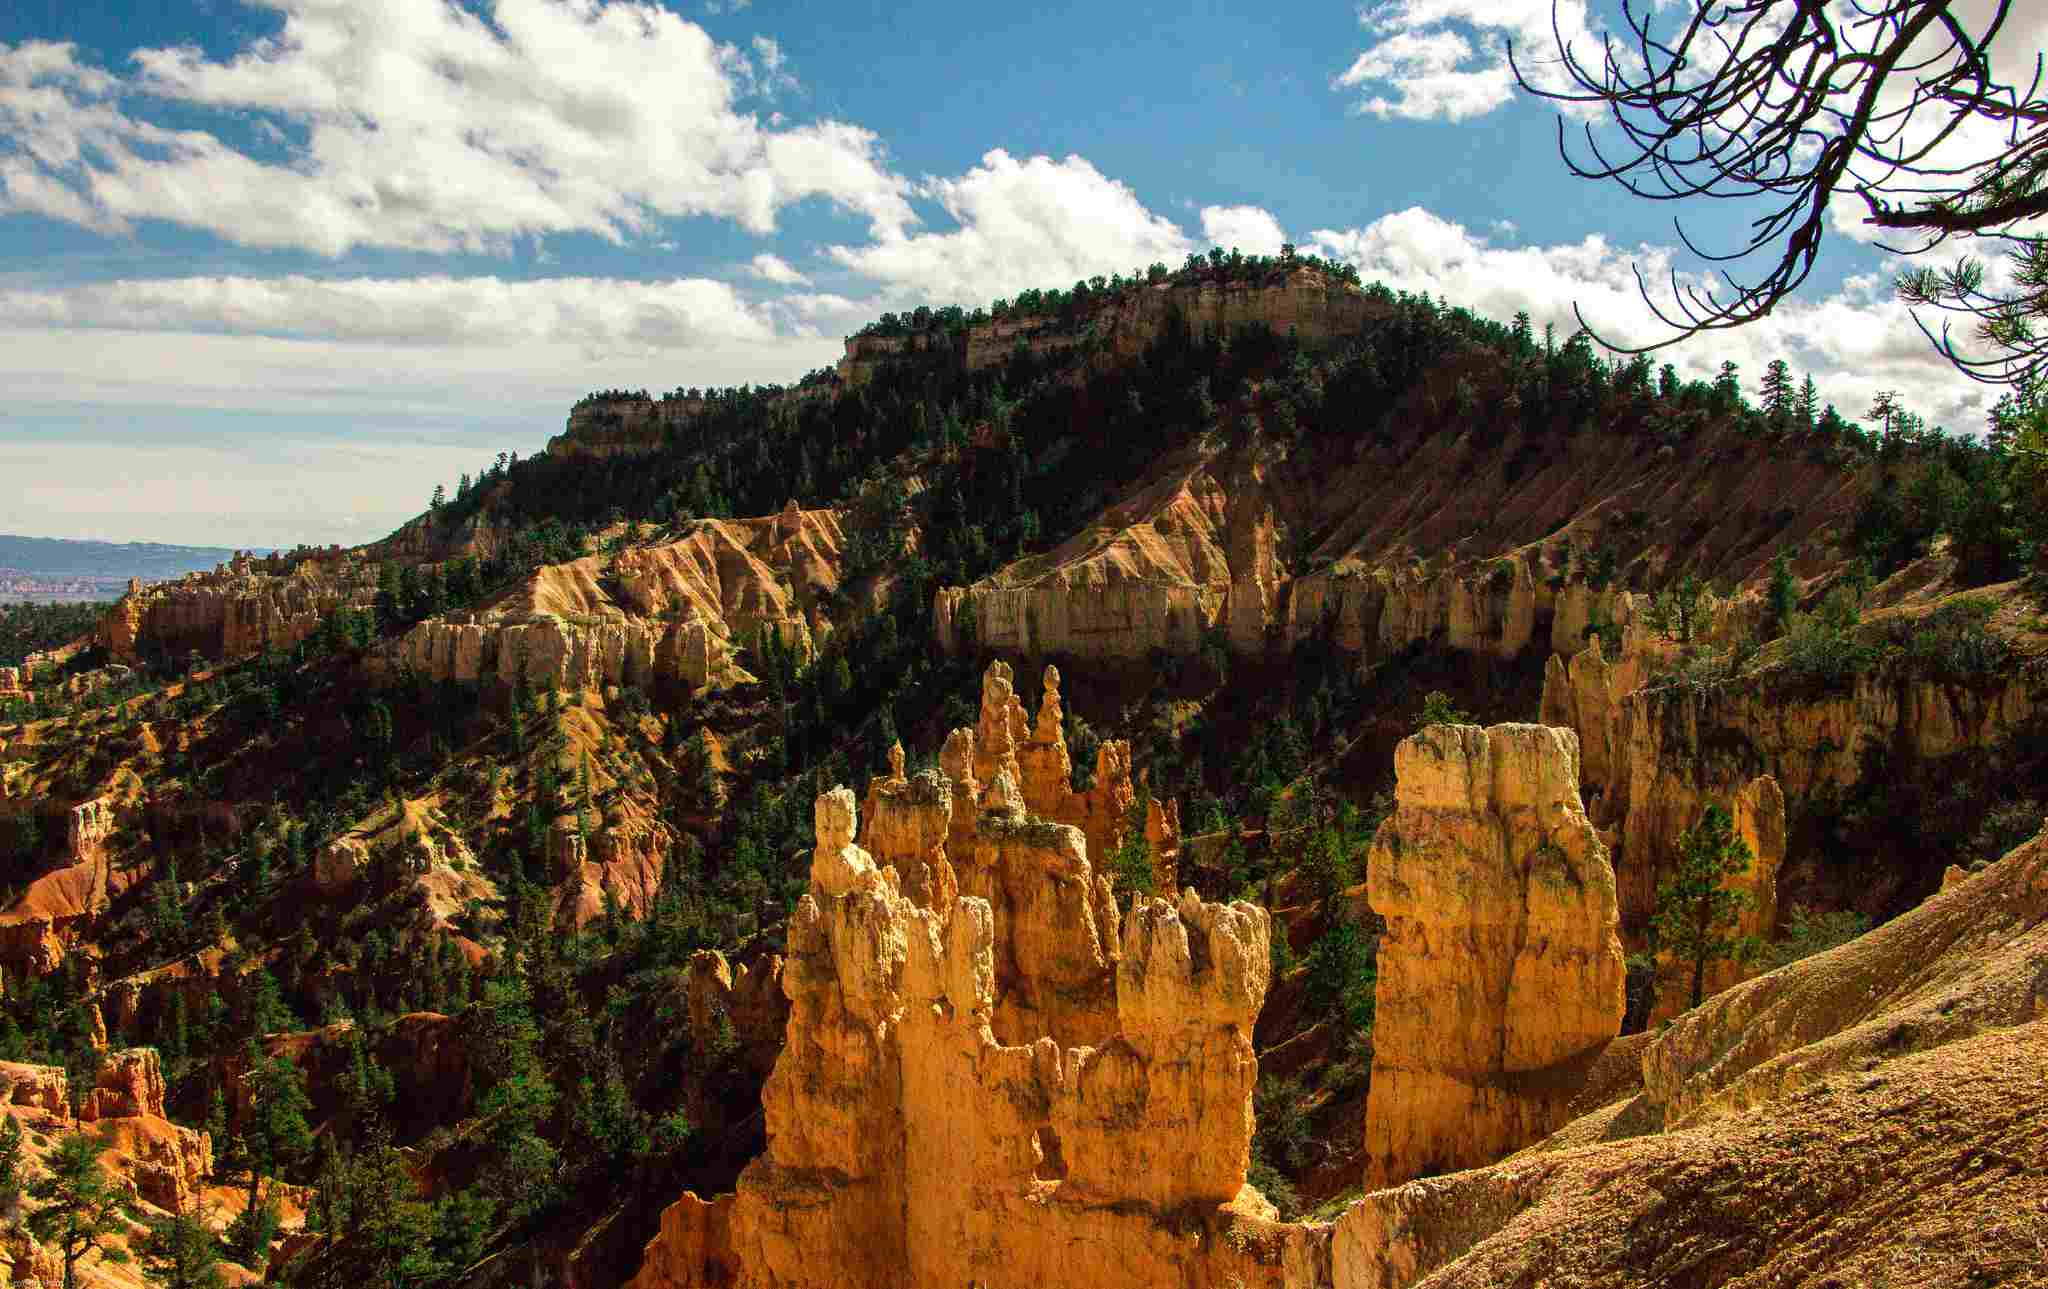 Southwest Utah (With images) | Snow canyon state park